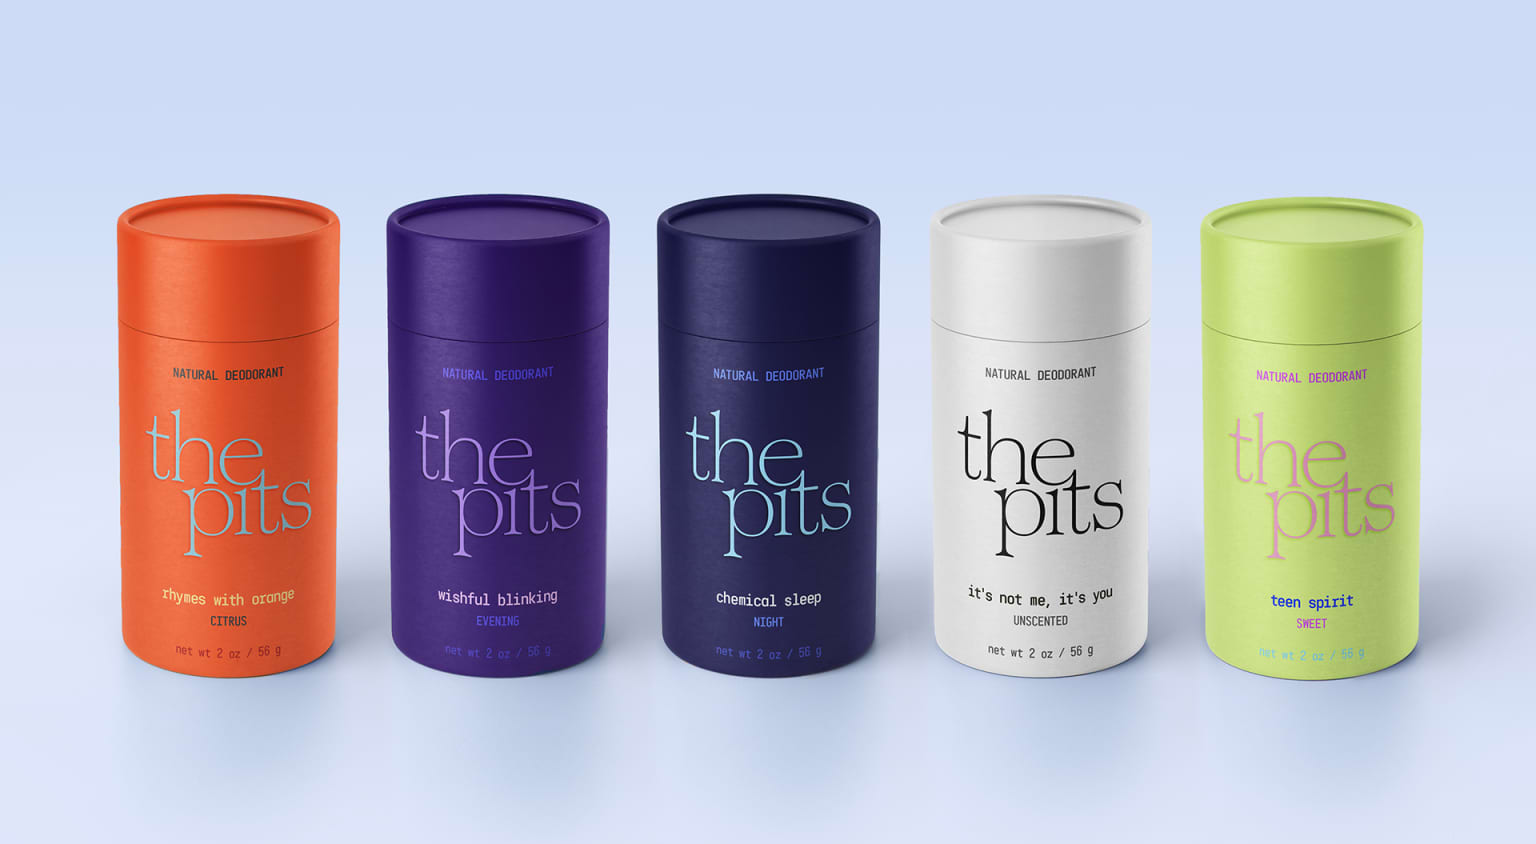 The Pits packaging